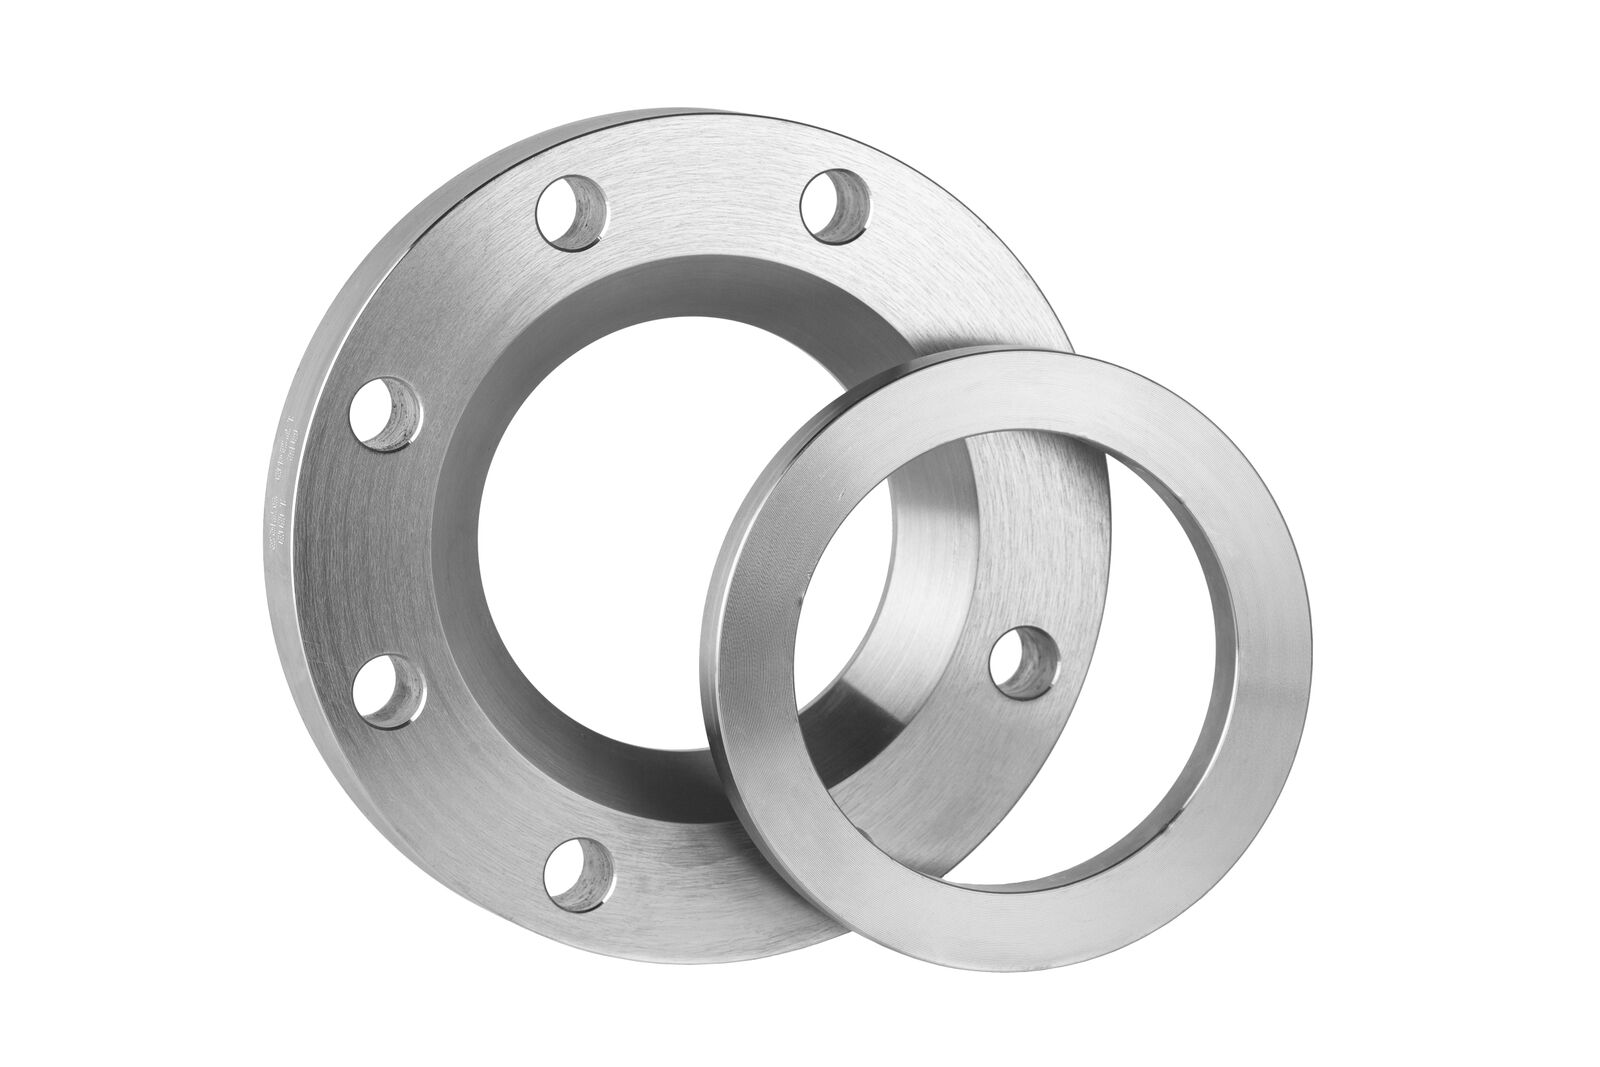 Lap Joint Flange, welding ring